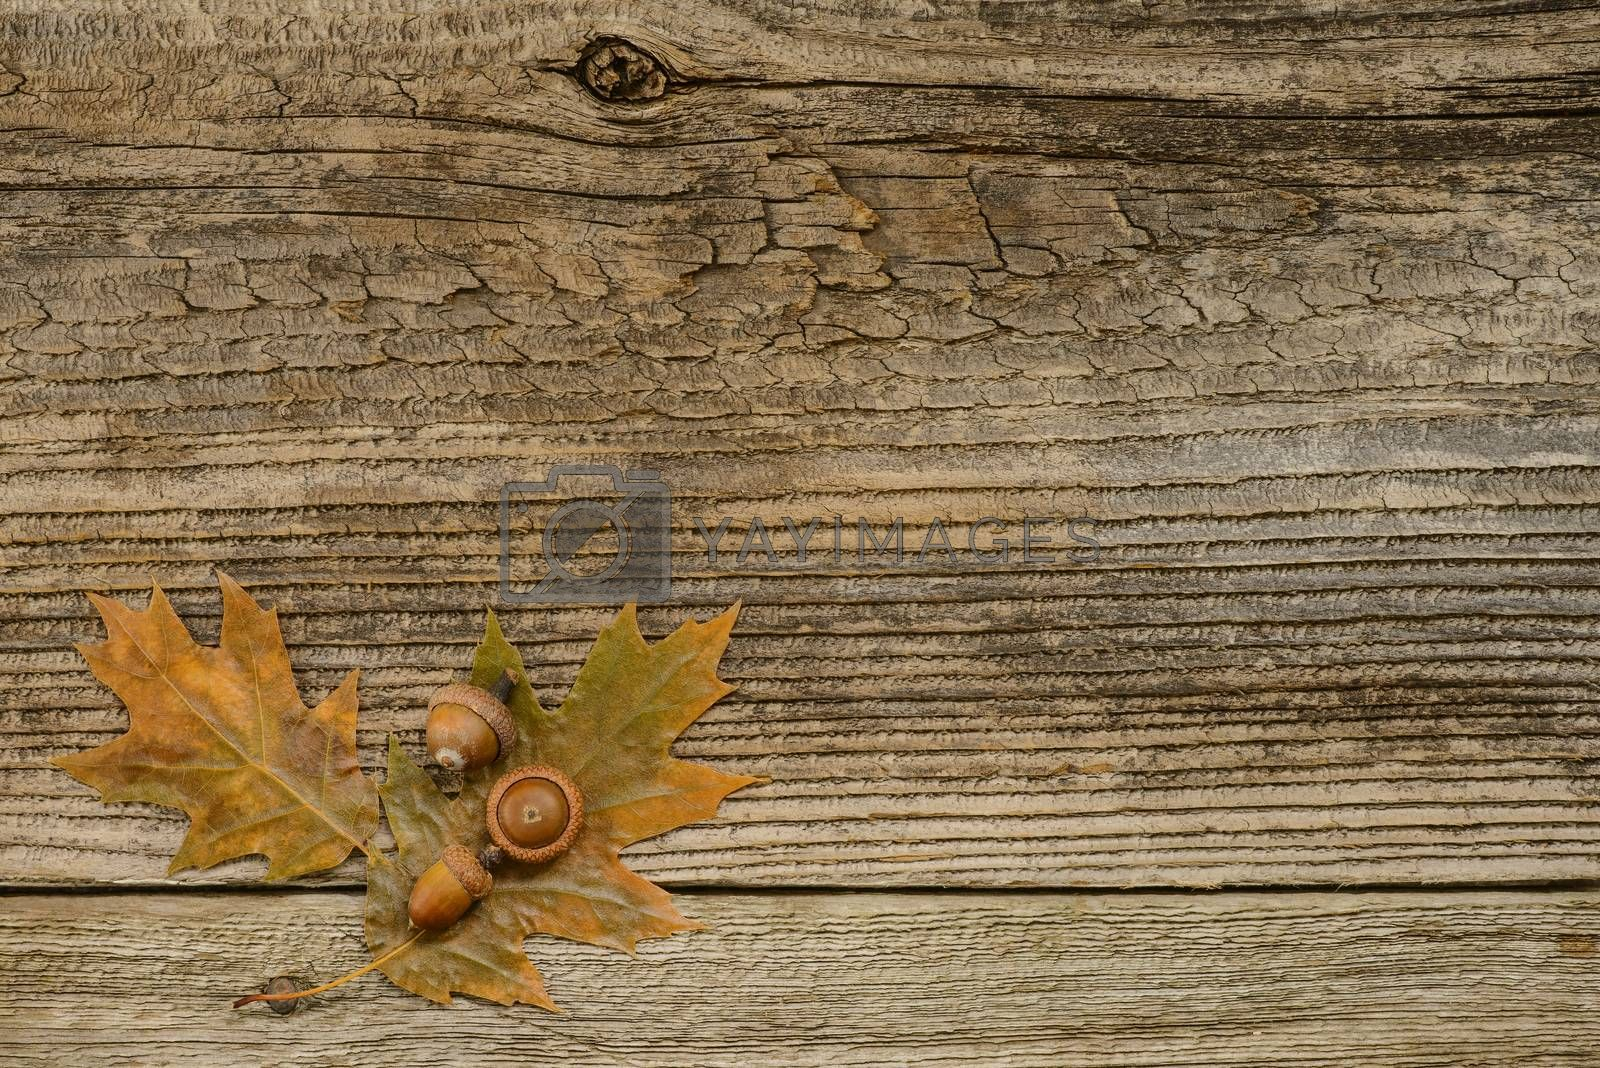 Oak leaves and acorns on a weathered barnboard background.